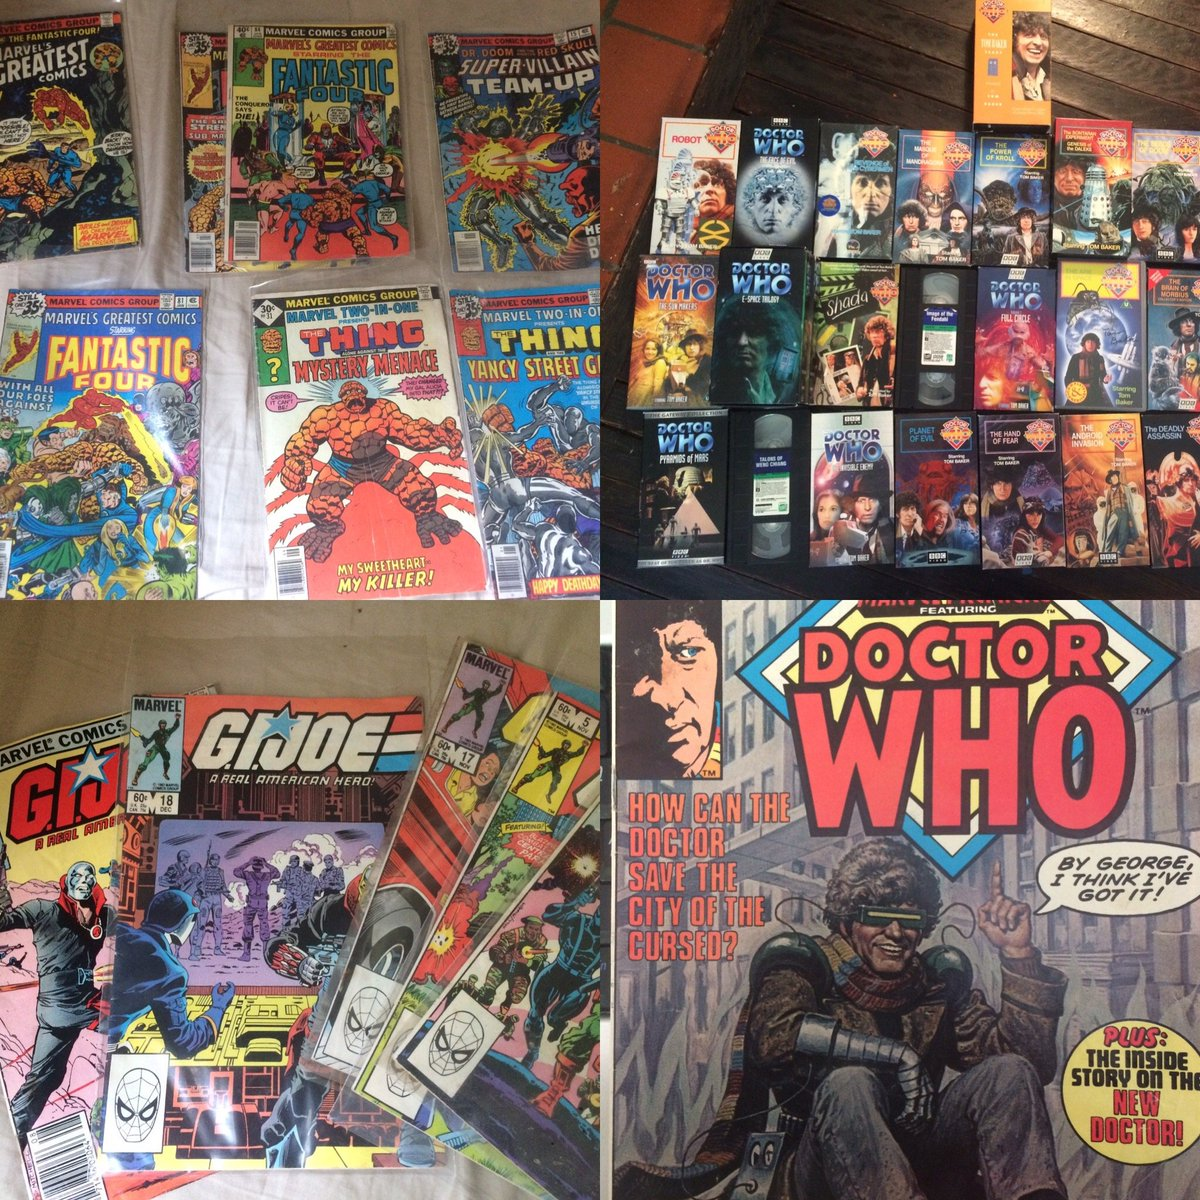 The foundations of my nerd-dom run very deep indeed. So many influences I'd half-forgotten about (and some I'll never forget for a moment).  #nerdalert #nerdy #Writers #WritingCommnunity #DrWho #GIJoe #fantastic4 #VHS #GeekyThingsAboutMe